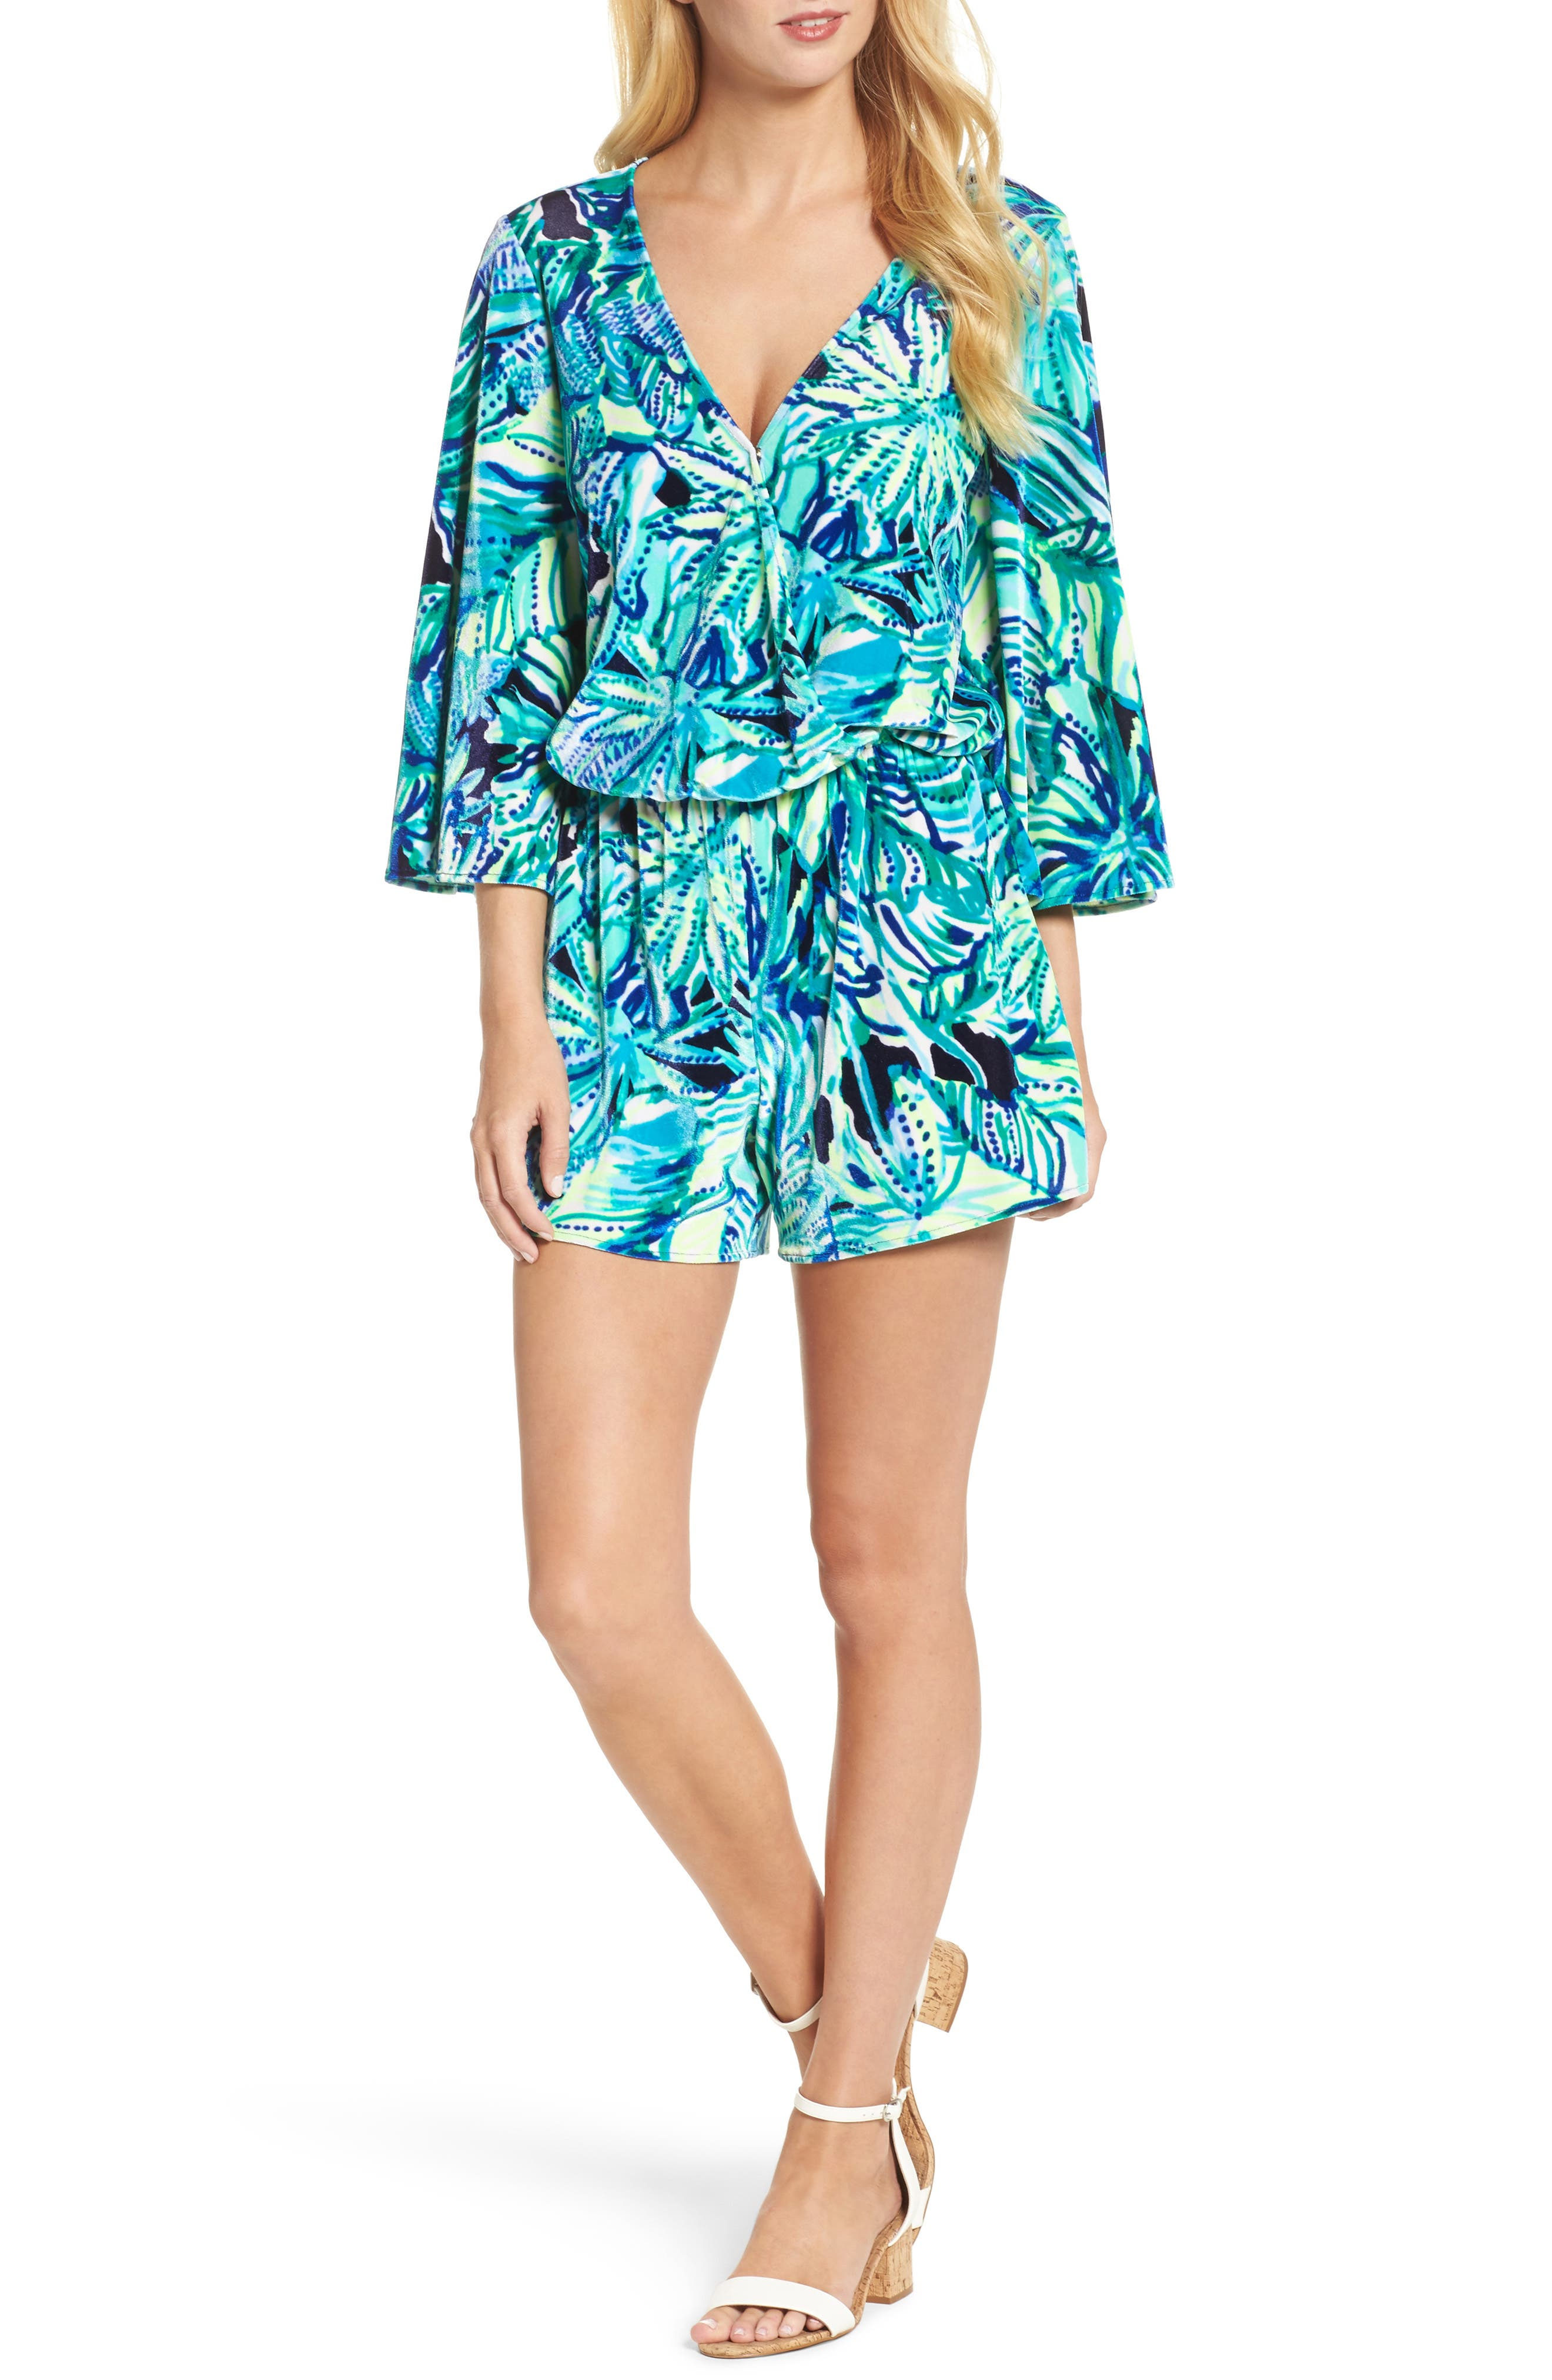 Lily Pulitzer<sup>®</sup> Viviana Romper,                         Main,                         color, Bright Navy Dally